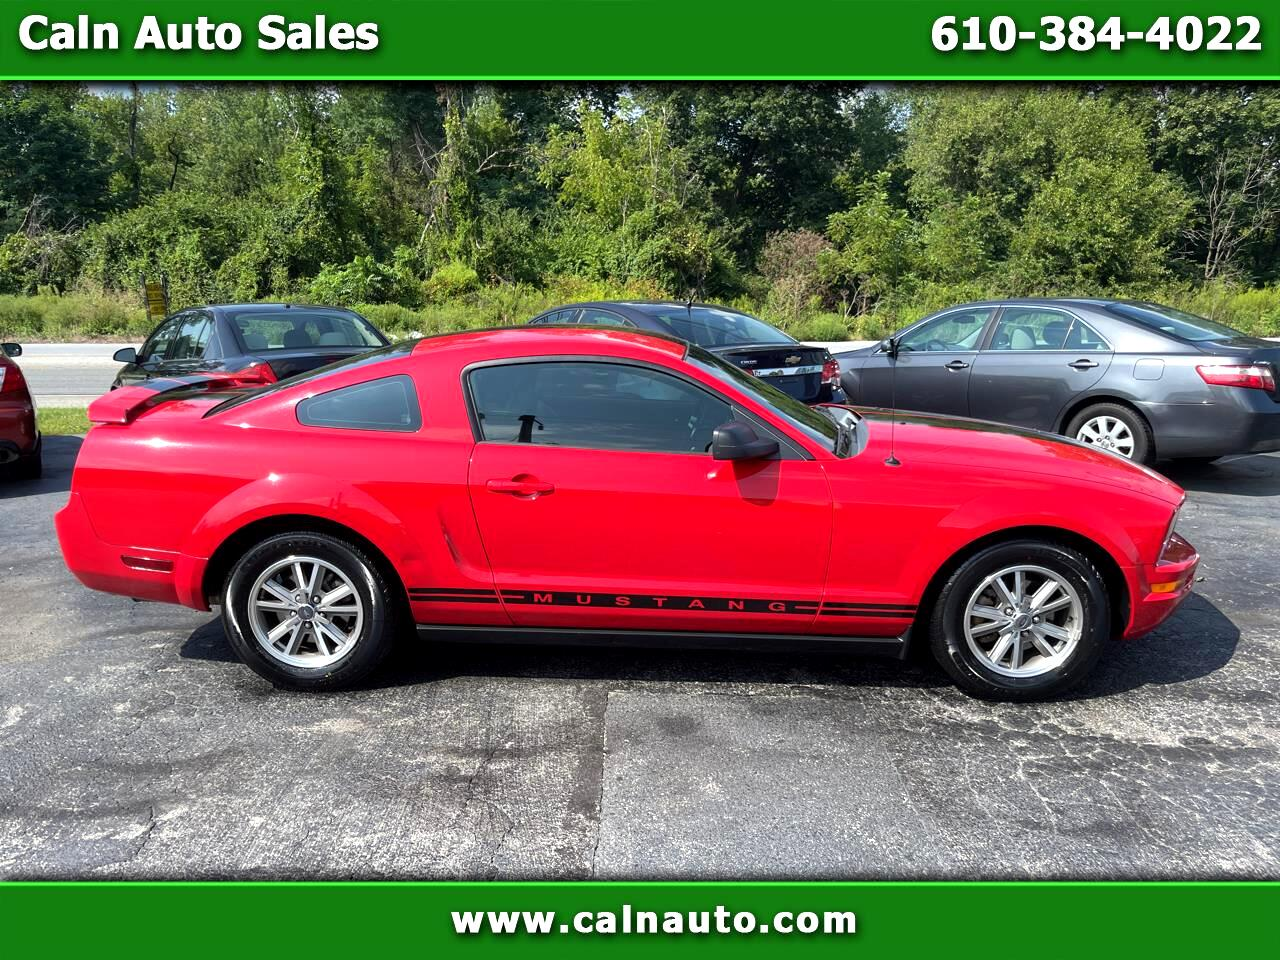 Ford Mustang 2dr Cpe Premium 2005